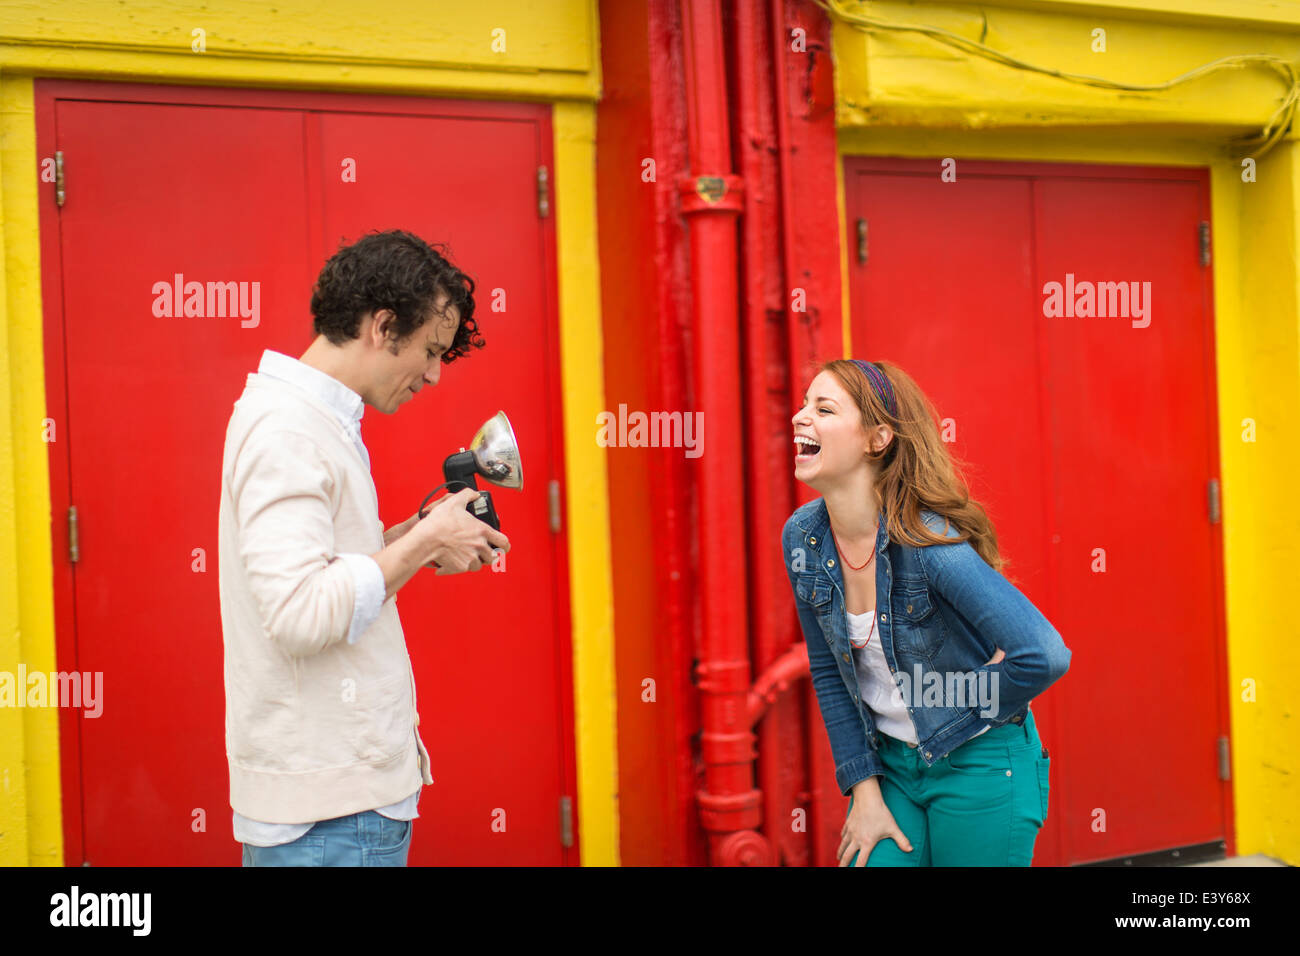 Couple having a laugh whilst taking photograph - Stock Image